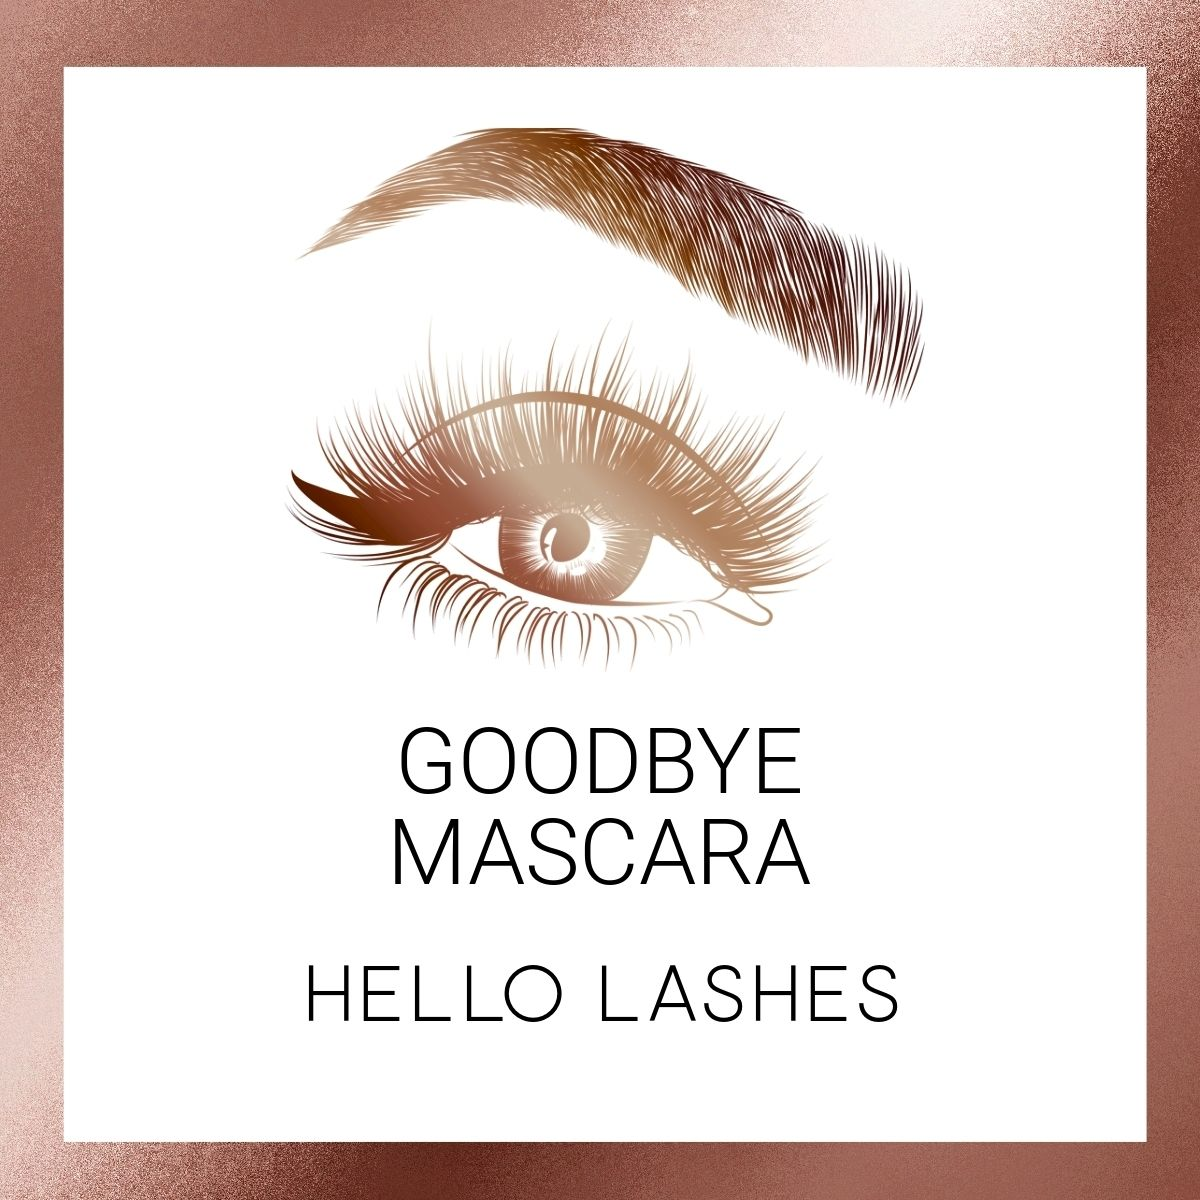 Are you looking for a reliable person to do your lash extension or can deliver/shipping your Mink Lashes? Contact @beautyhiddengems. Text Only 407-797-9724⠀  #yonisteam #vaginalsteam #Colgatesmile #wombwisdom #goddessvibes #wombhealing #minklashes #yonisteaming #yonisteampic.twitter.com/AajgBj0diz